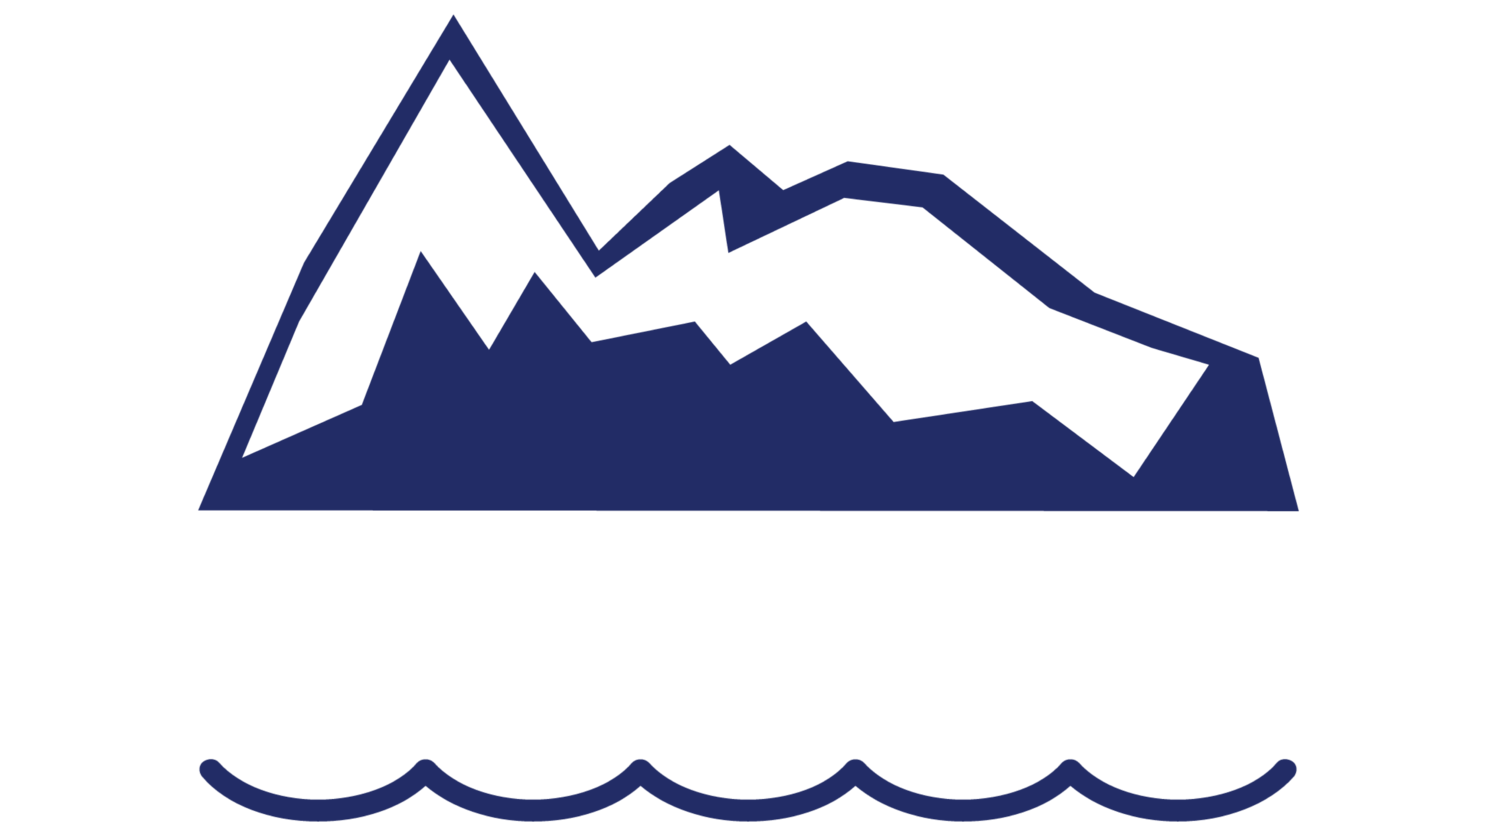 Sea 2 Summit